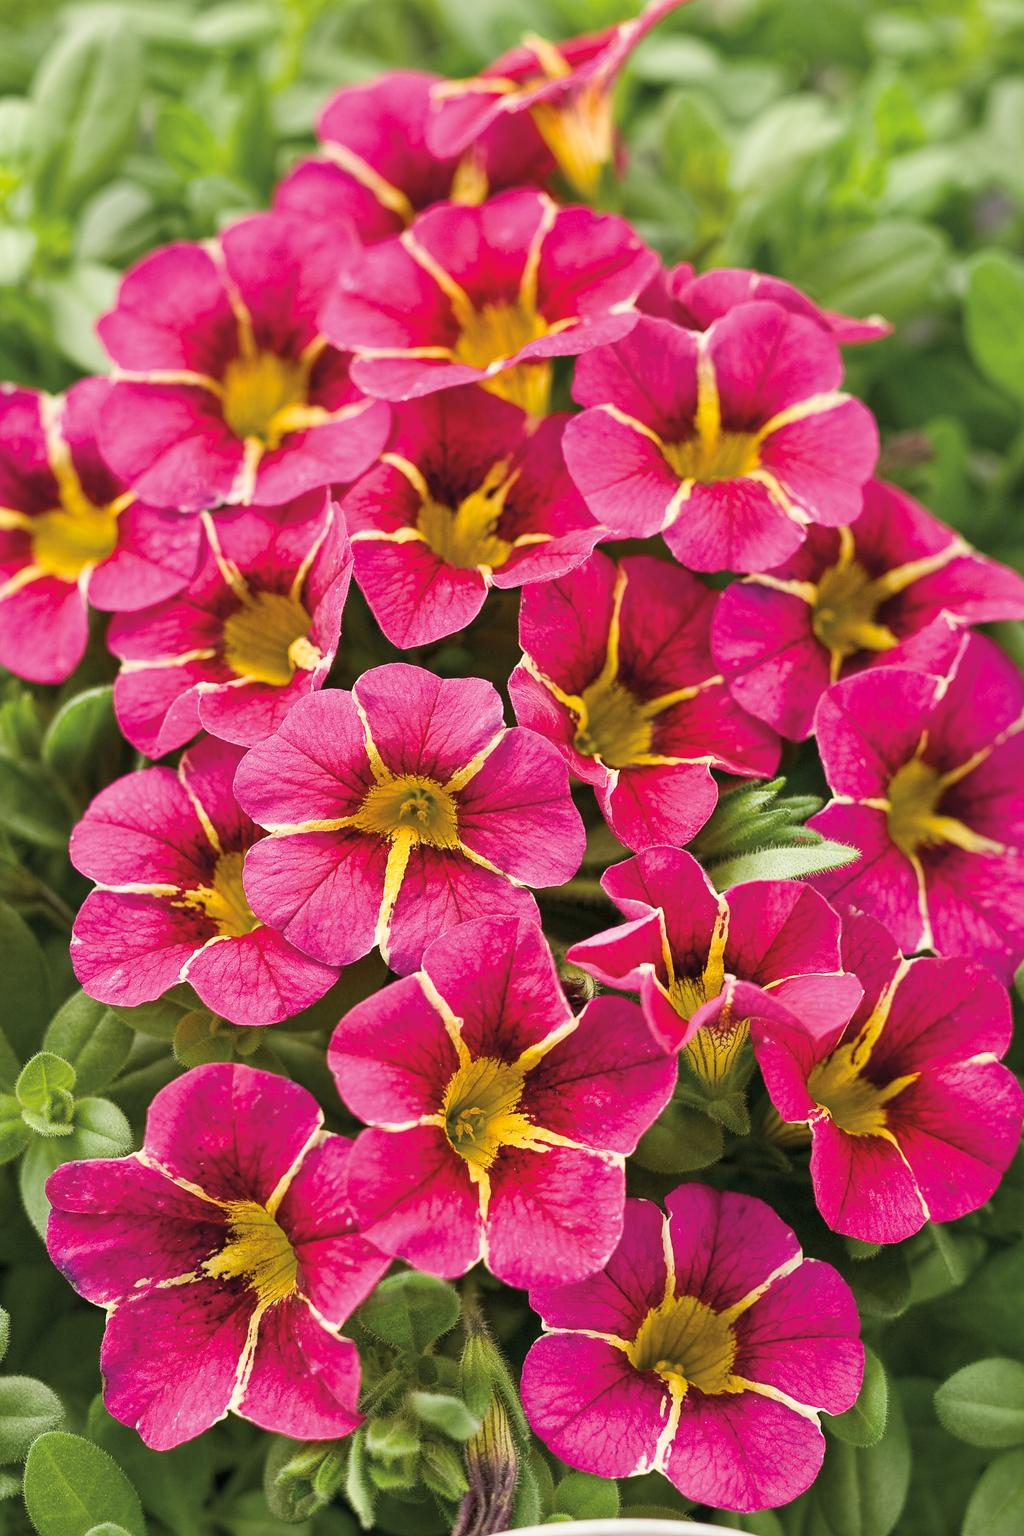 Superbells cherry star calibrachoa hybrid images - Calibrachoa superbells ...